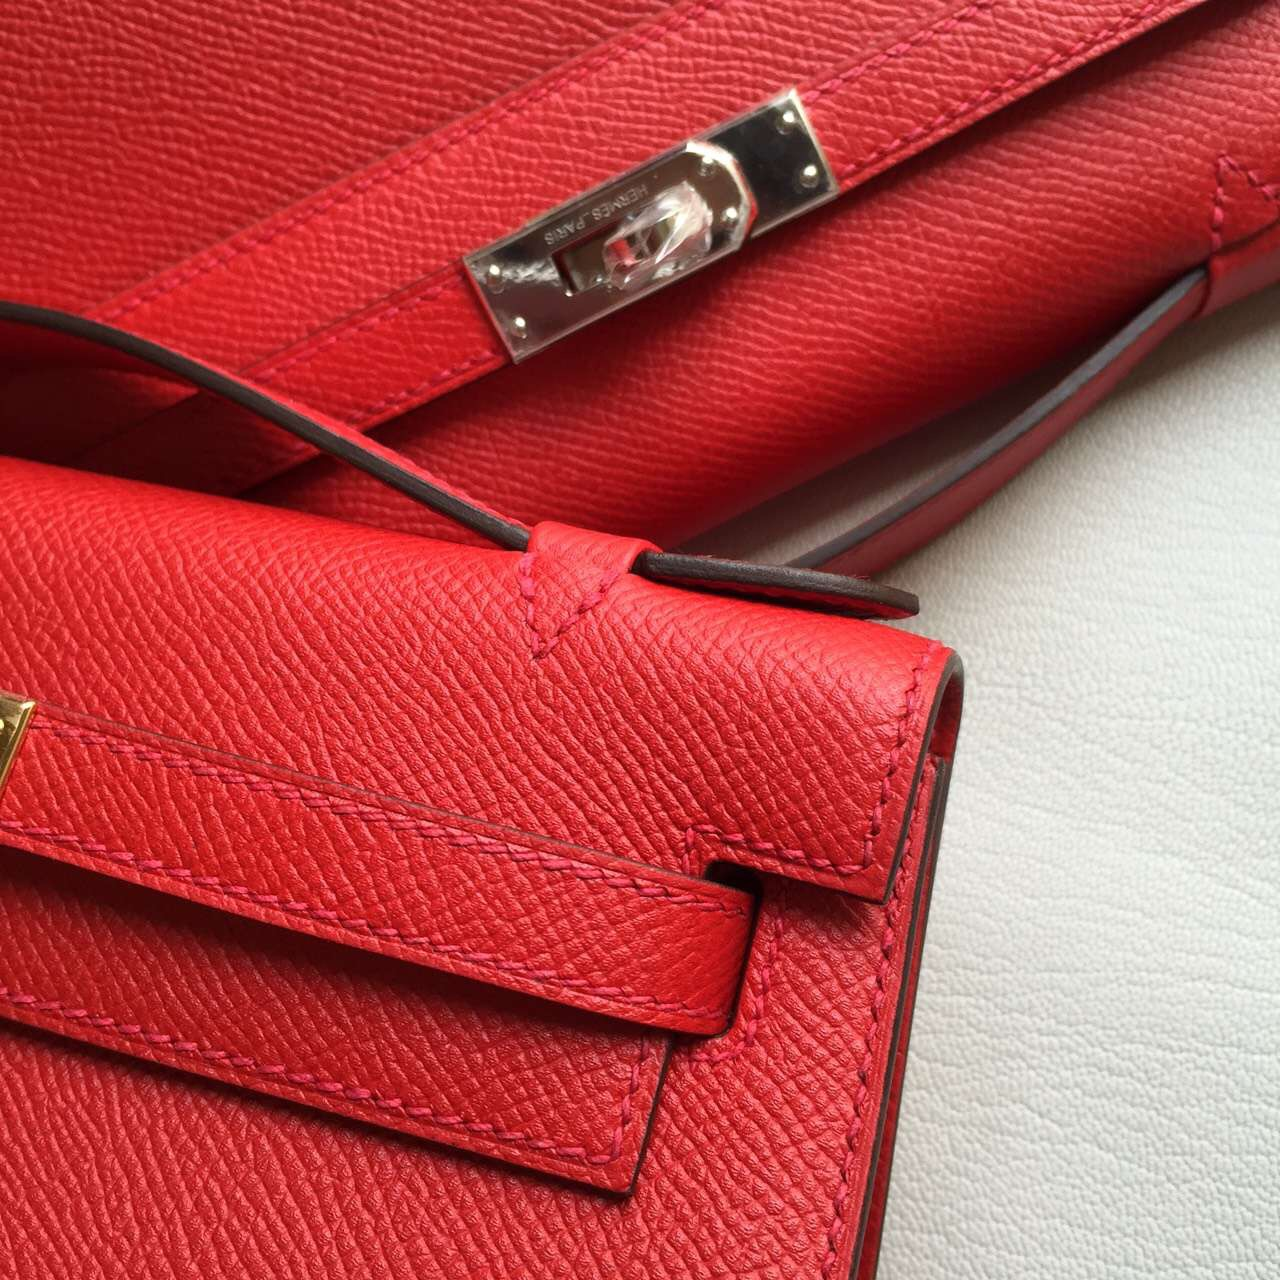 Discount Hermes Q5 Rouge Casaque Epsom Calf Leather Minikelly Clutch Bag 22CM